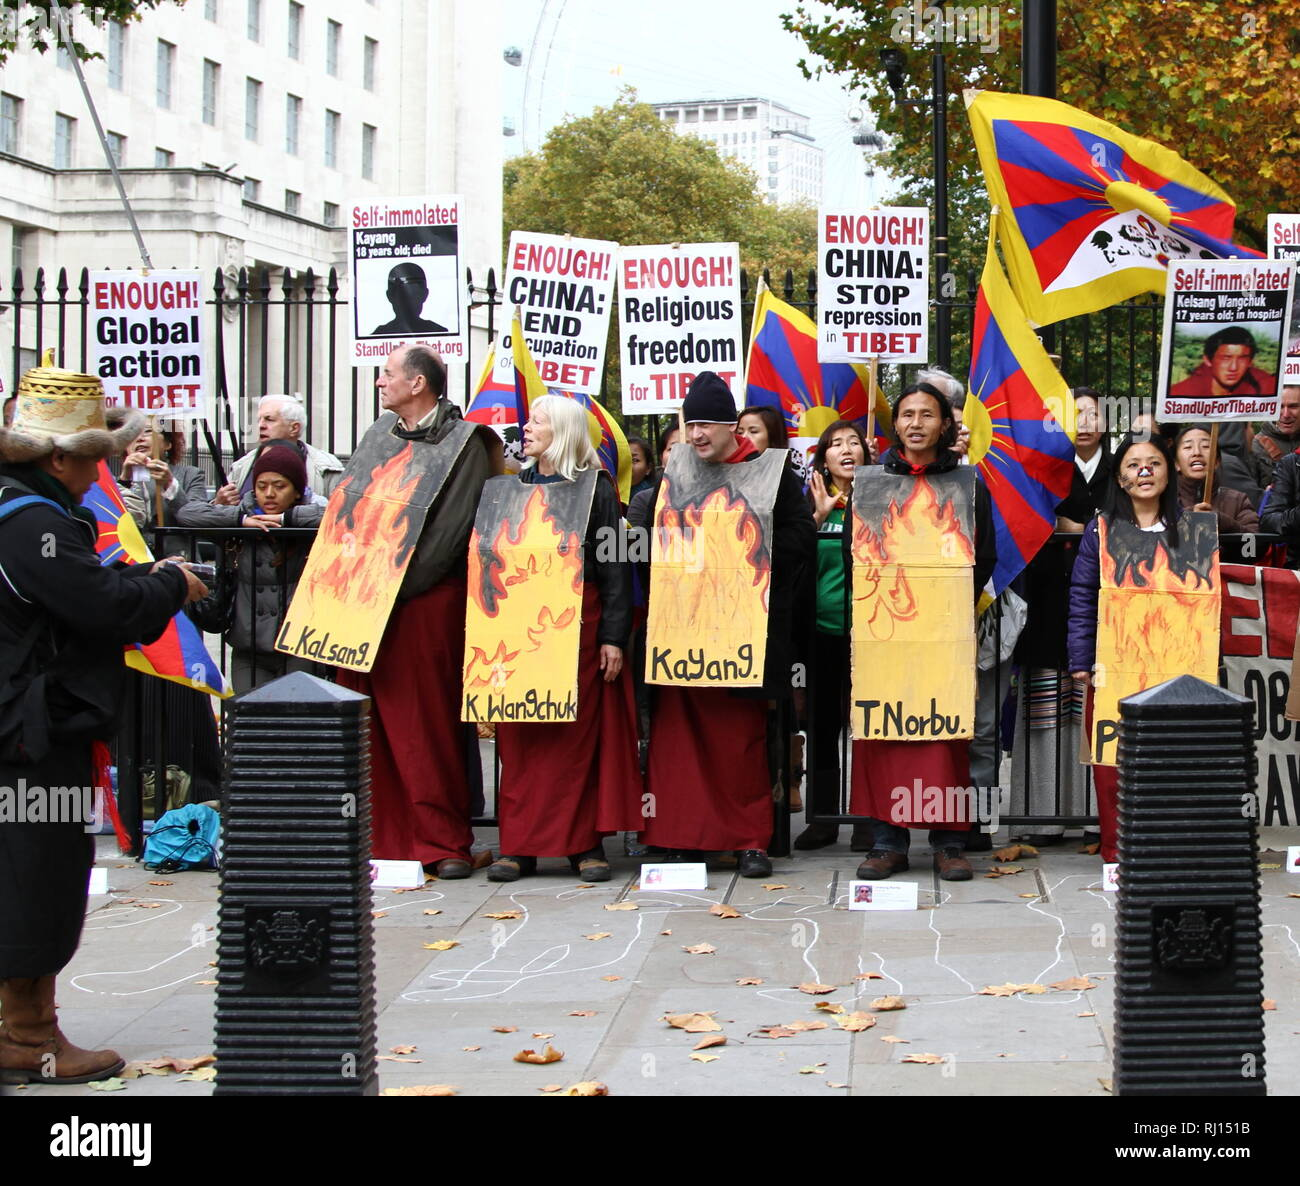 Tibet. Religion. Religious freedom for Tibet. Demonstration against Chinese repression in Tibet. China end occupation in Tibet. Location Whitehall, London, UK. - Stock Image